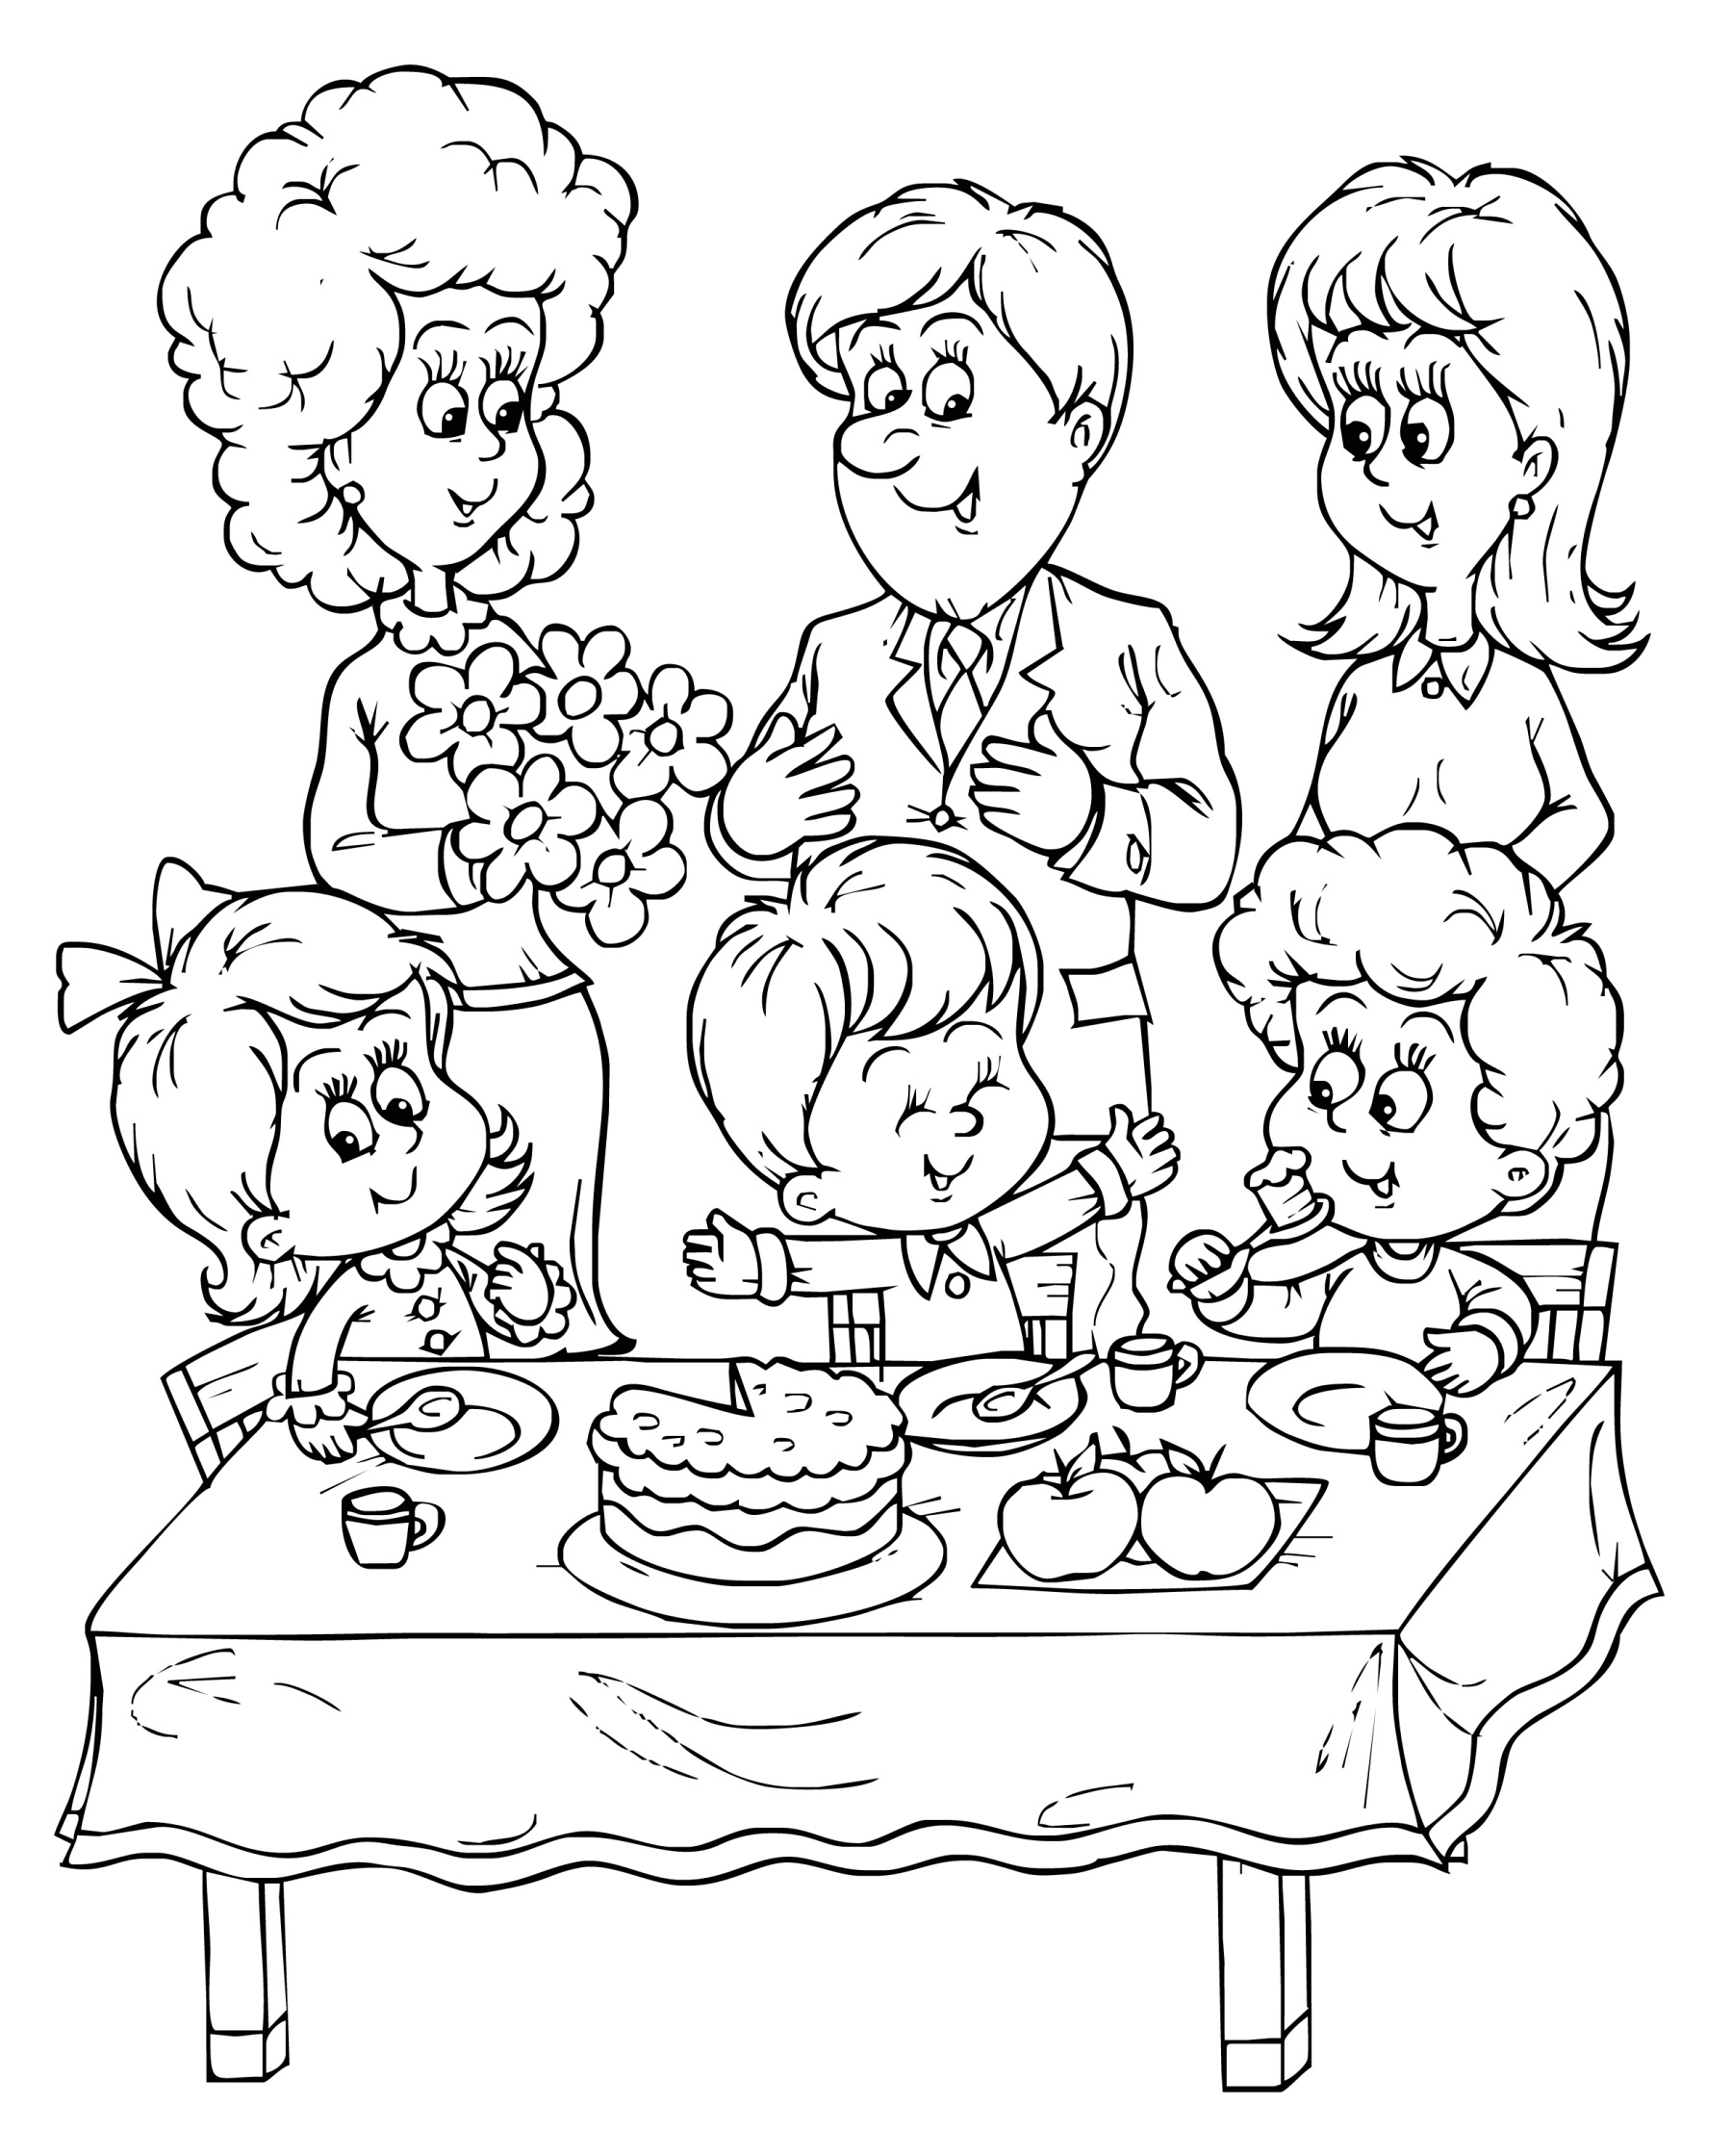 birthday party drawing for kids ; birthday-drawing-ideas-24